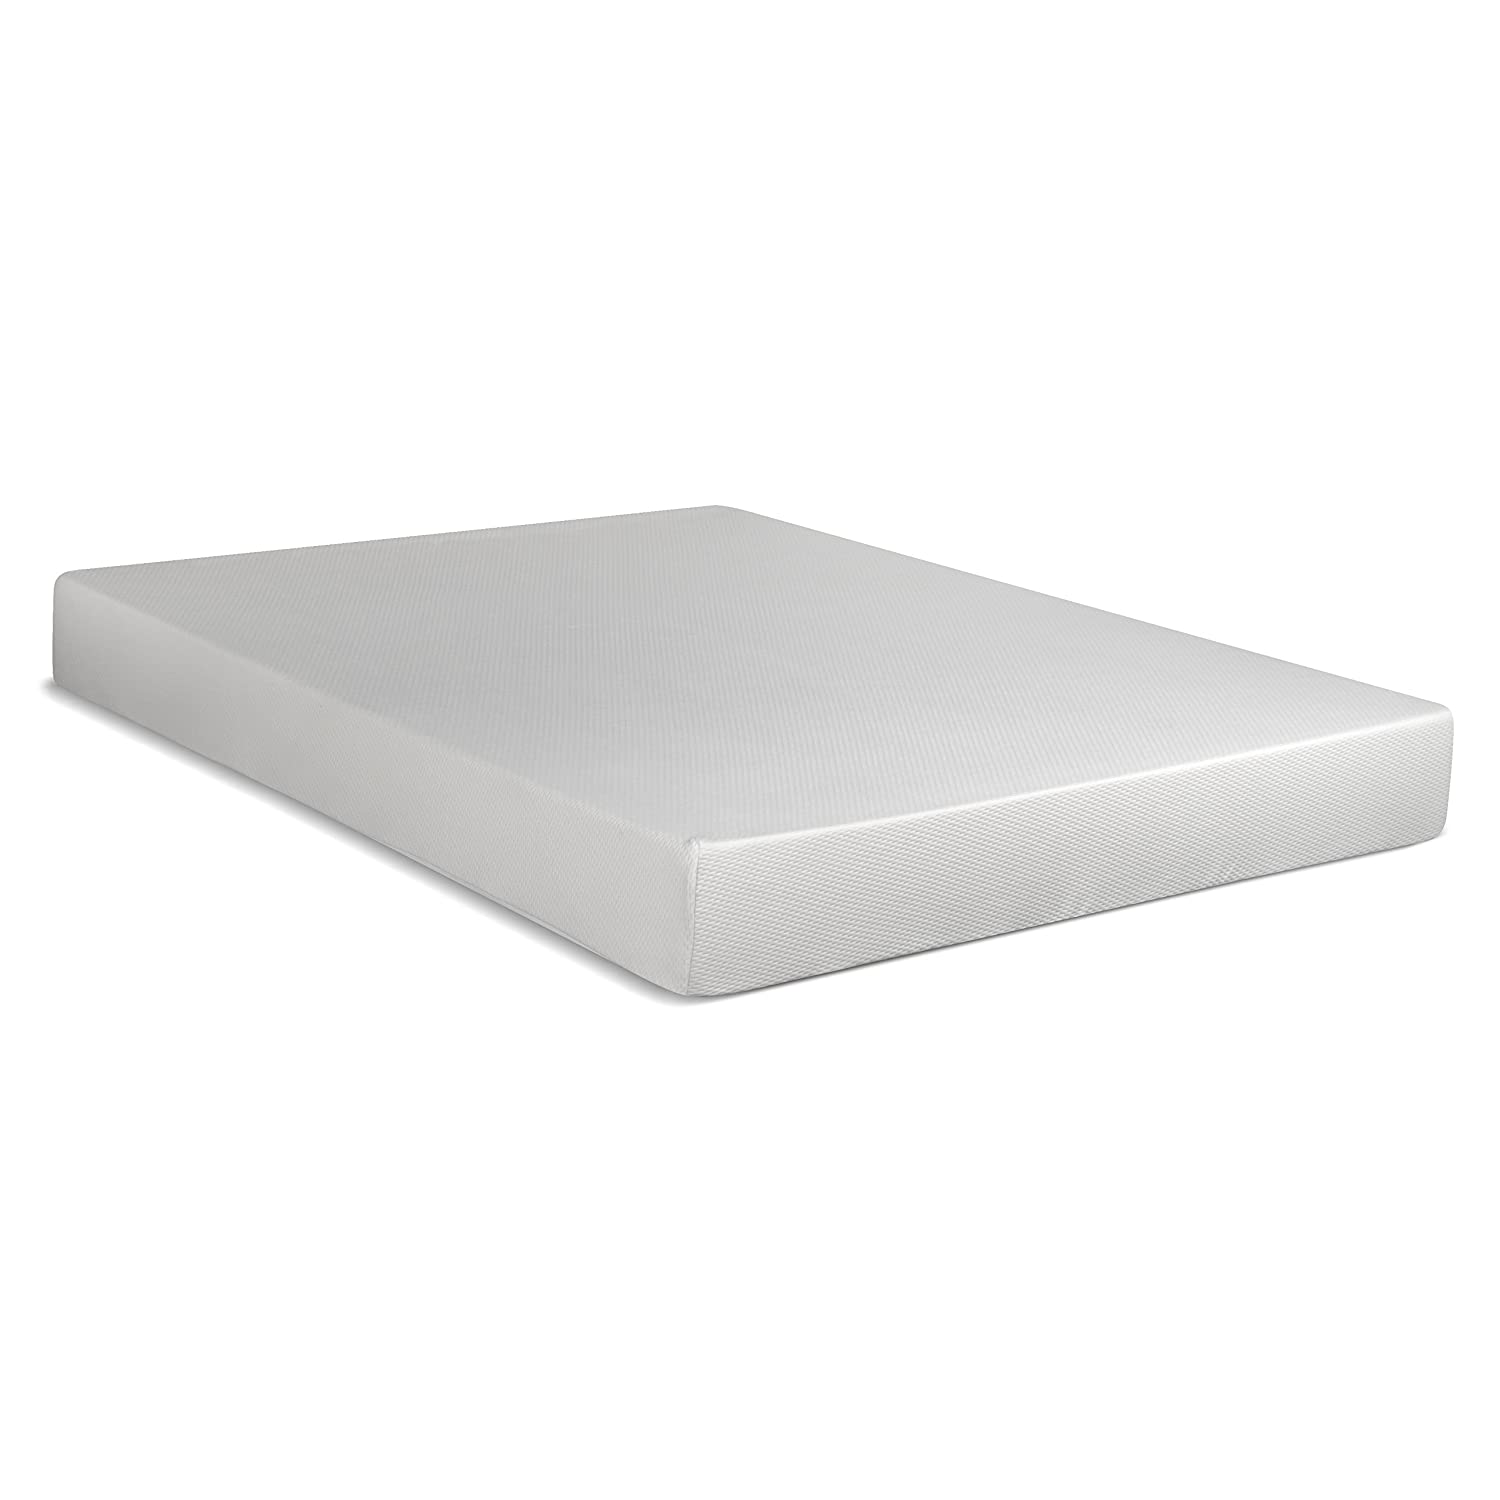 Serenia Sleep 8-Inch Memory Foam RV Mattress, Short Full